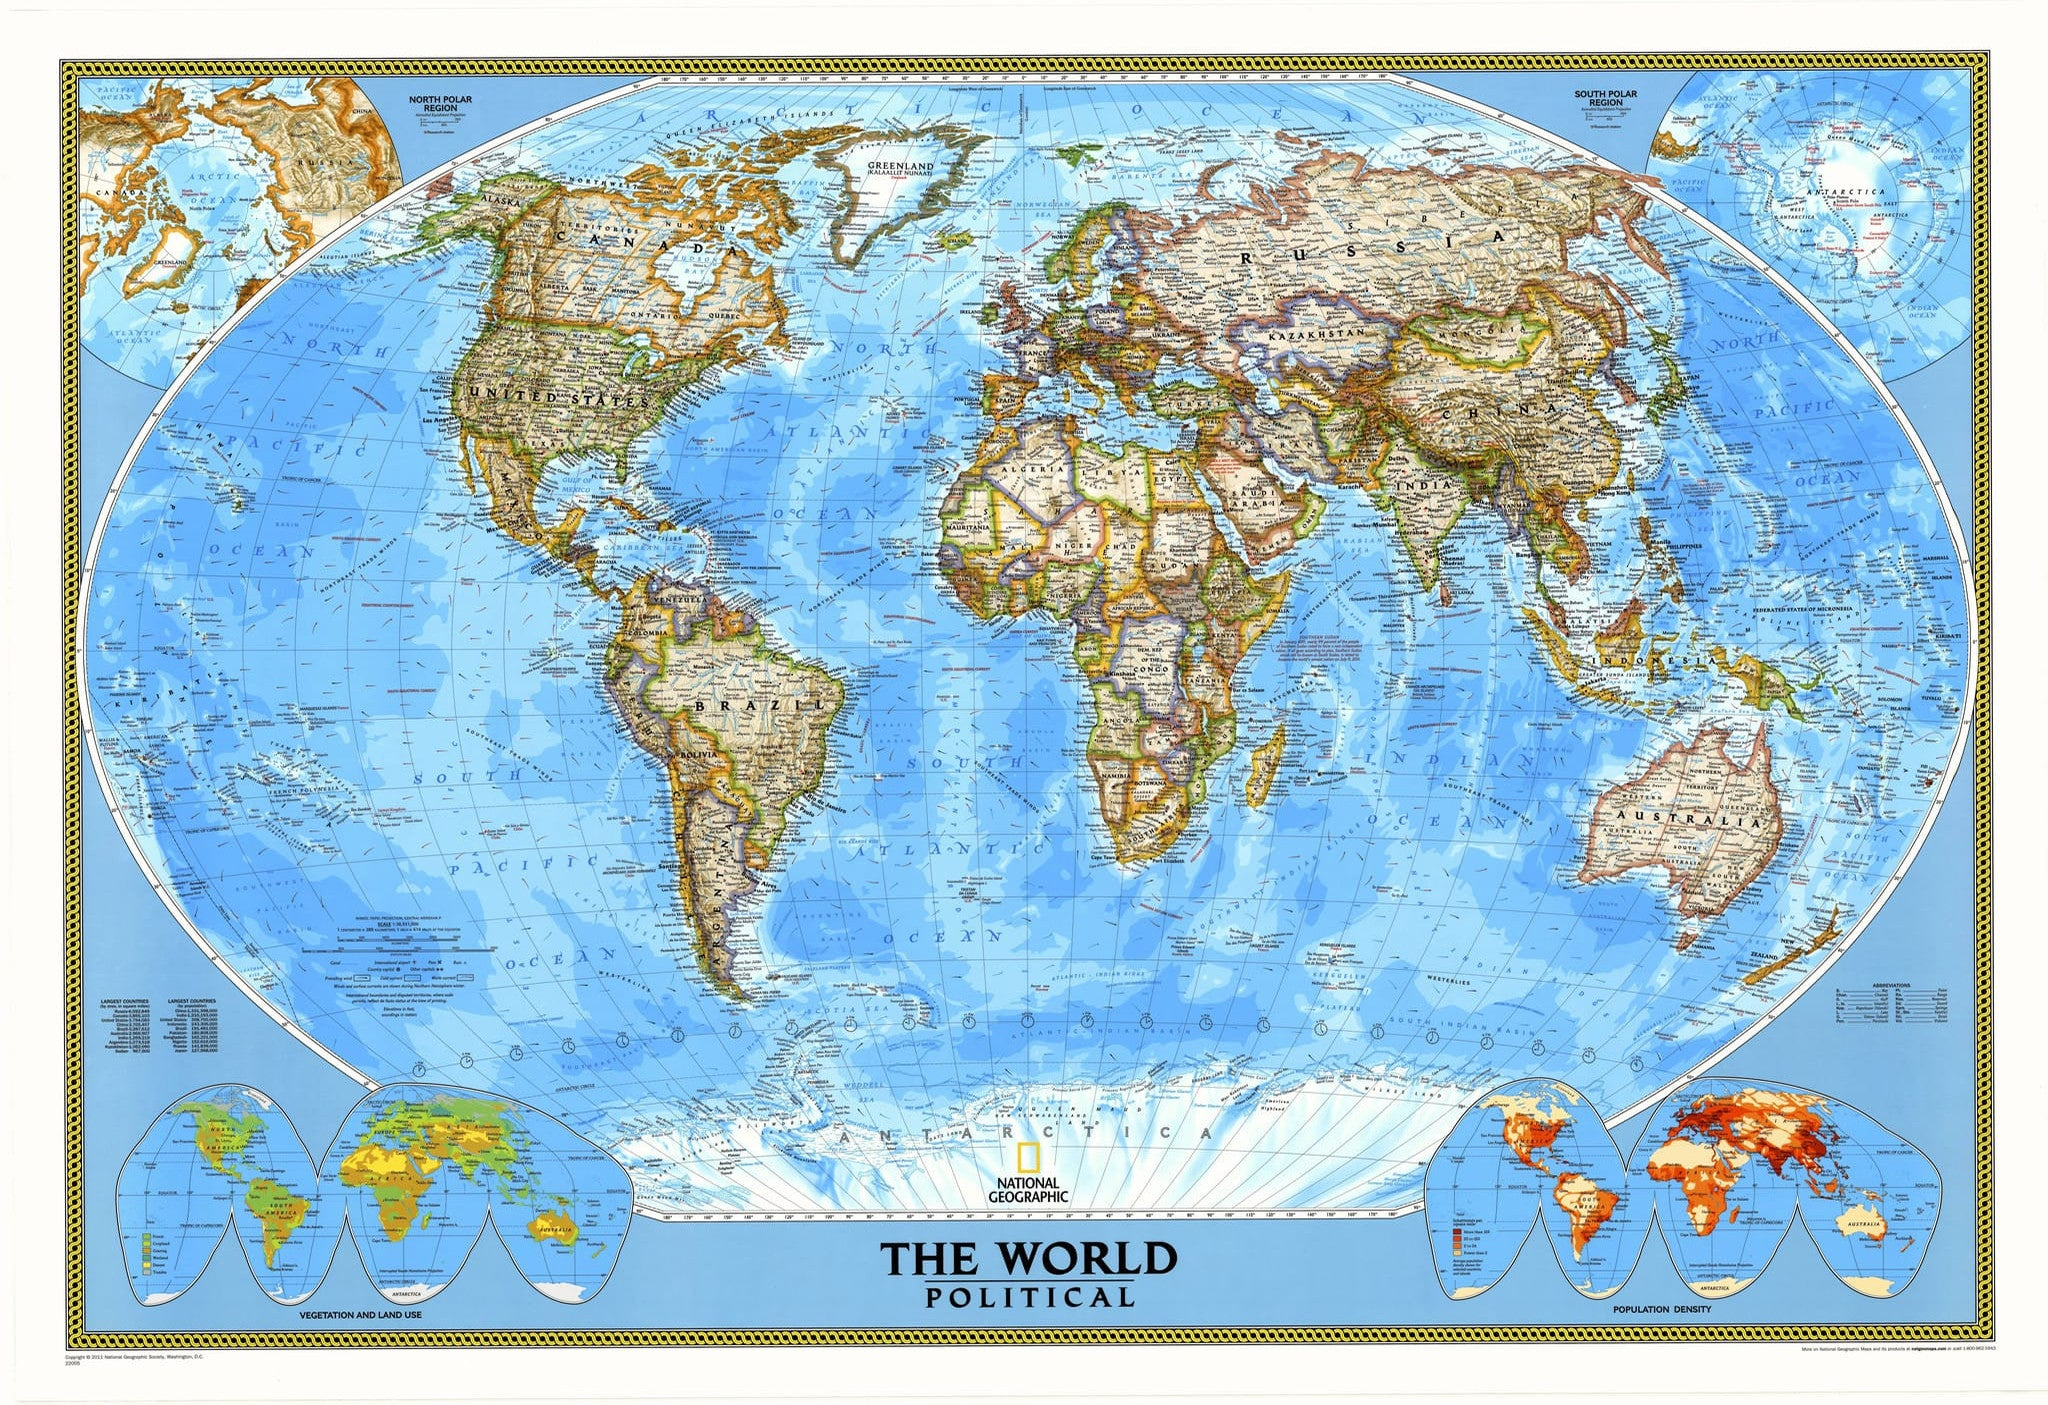 World Political Map by National Geographic | eBay